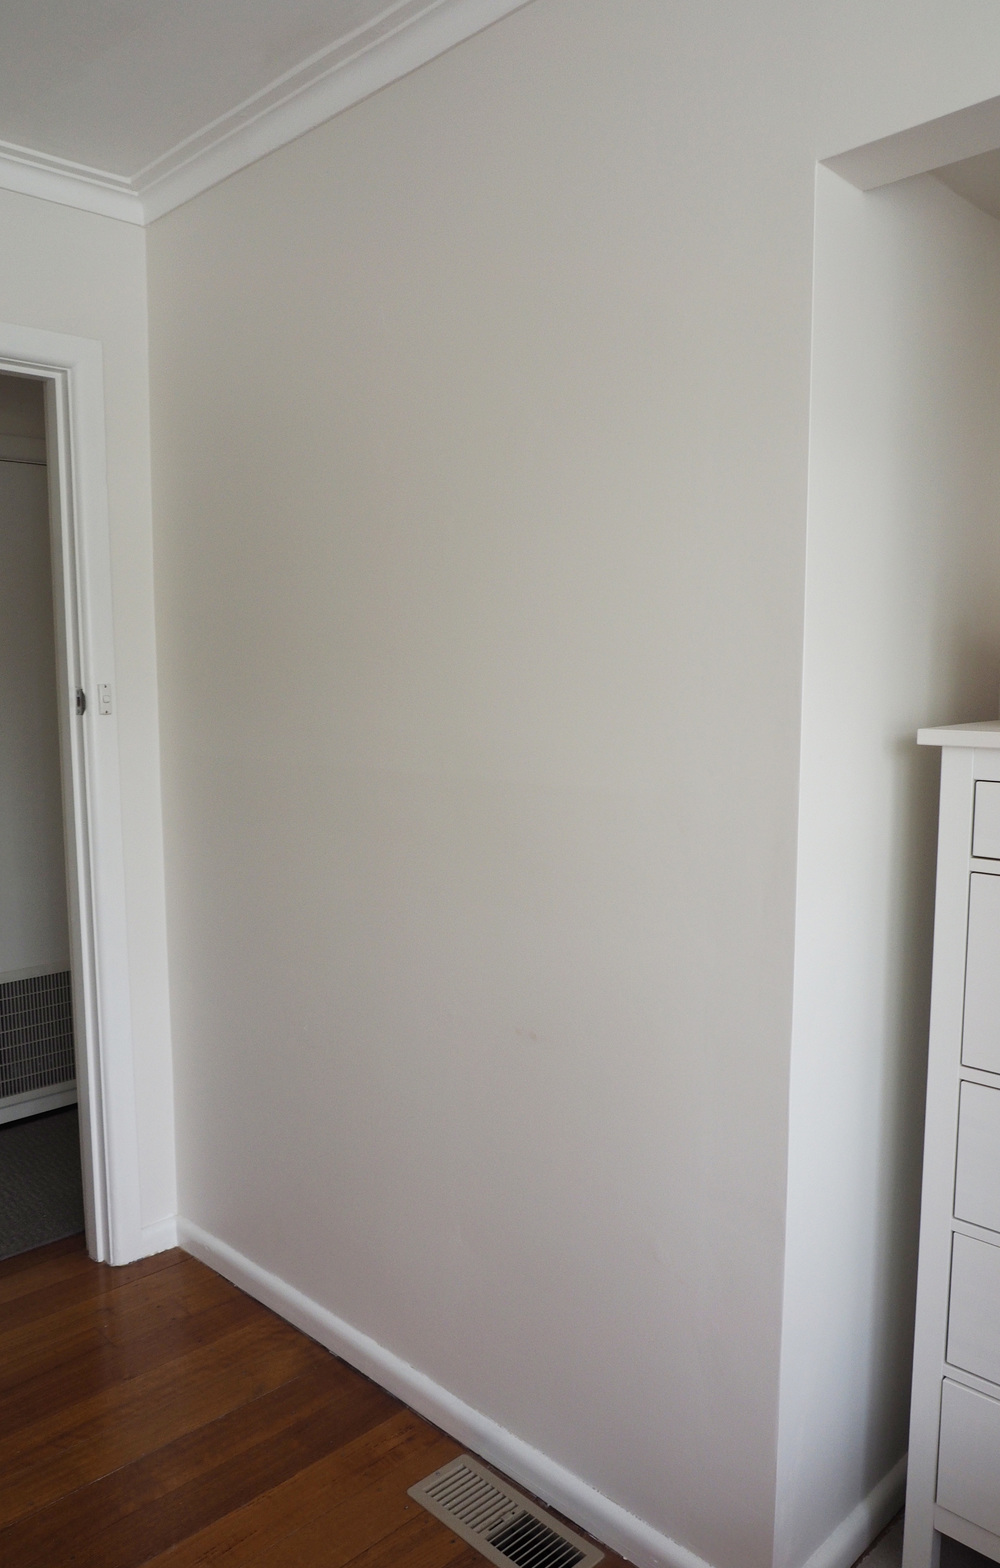 blank wall for an artwork display